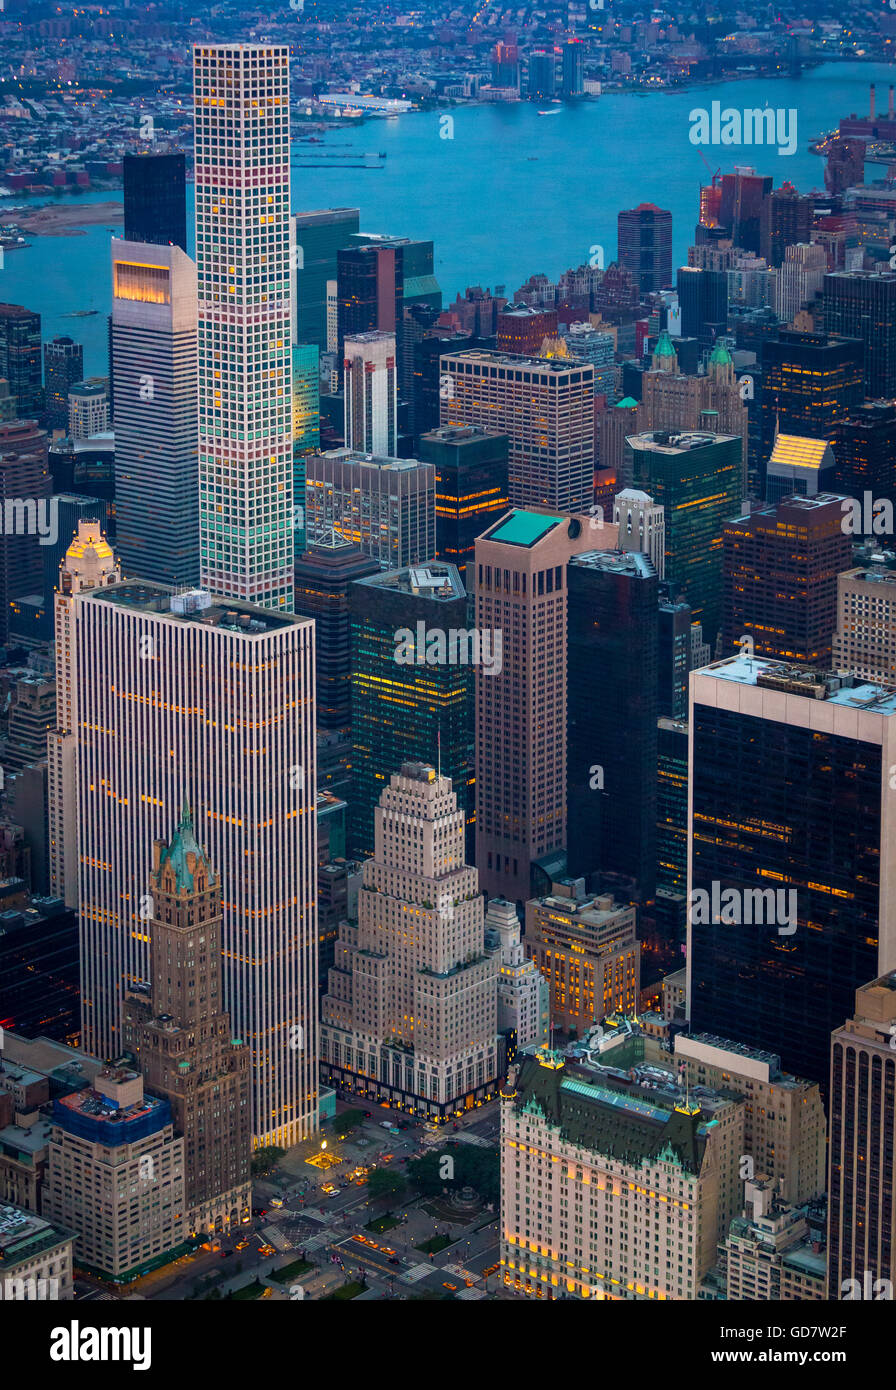 Manhattan is the most densely populated of the five boroughs of New York City. - Stock Image